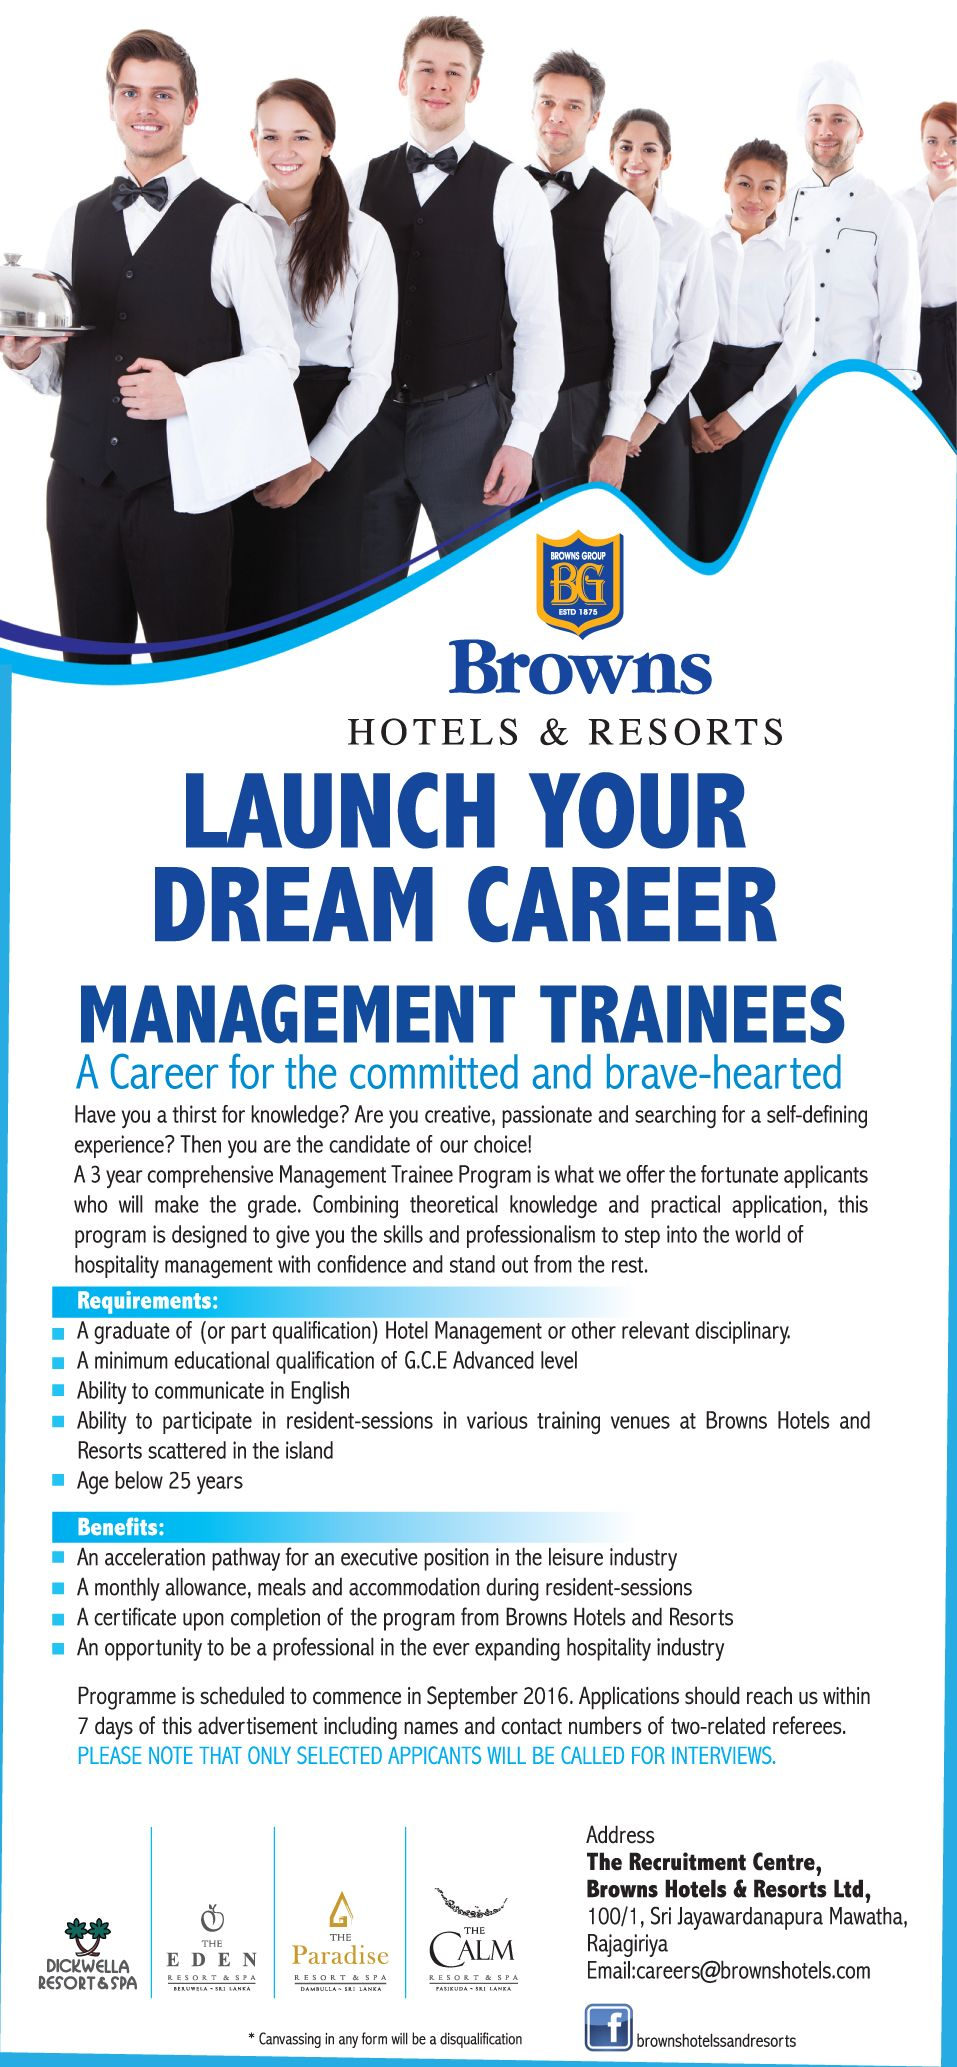 Hospitality Job Recruitment Browns Hotels Resorts Management Trainee Build Career